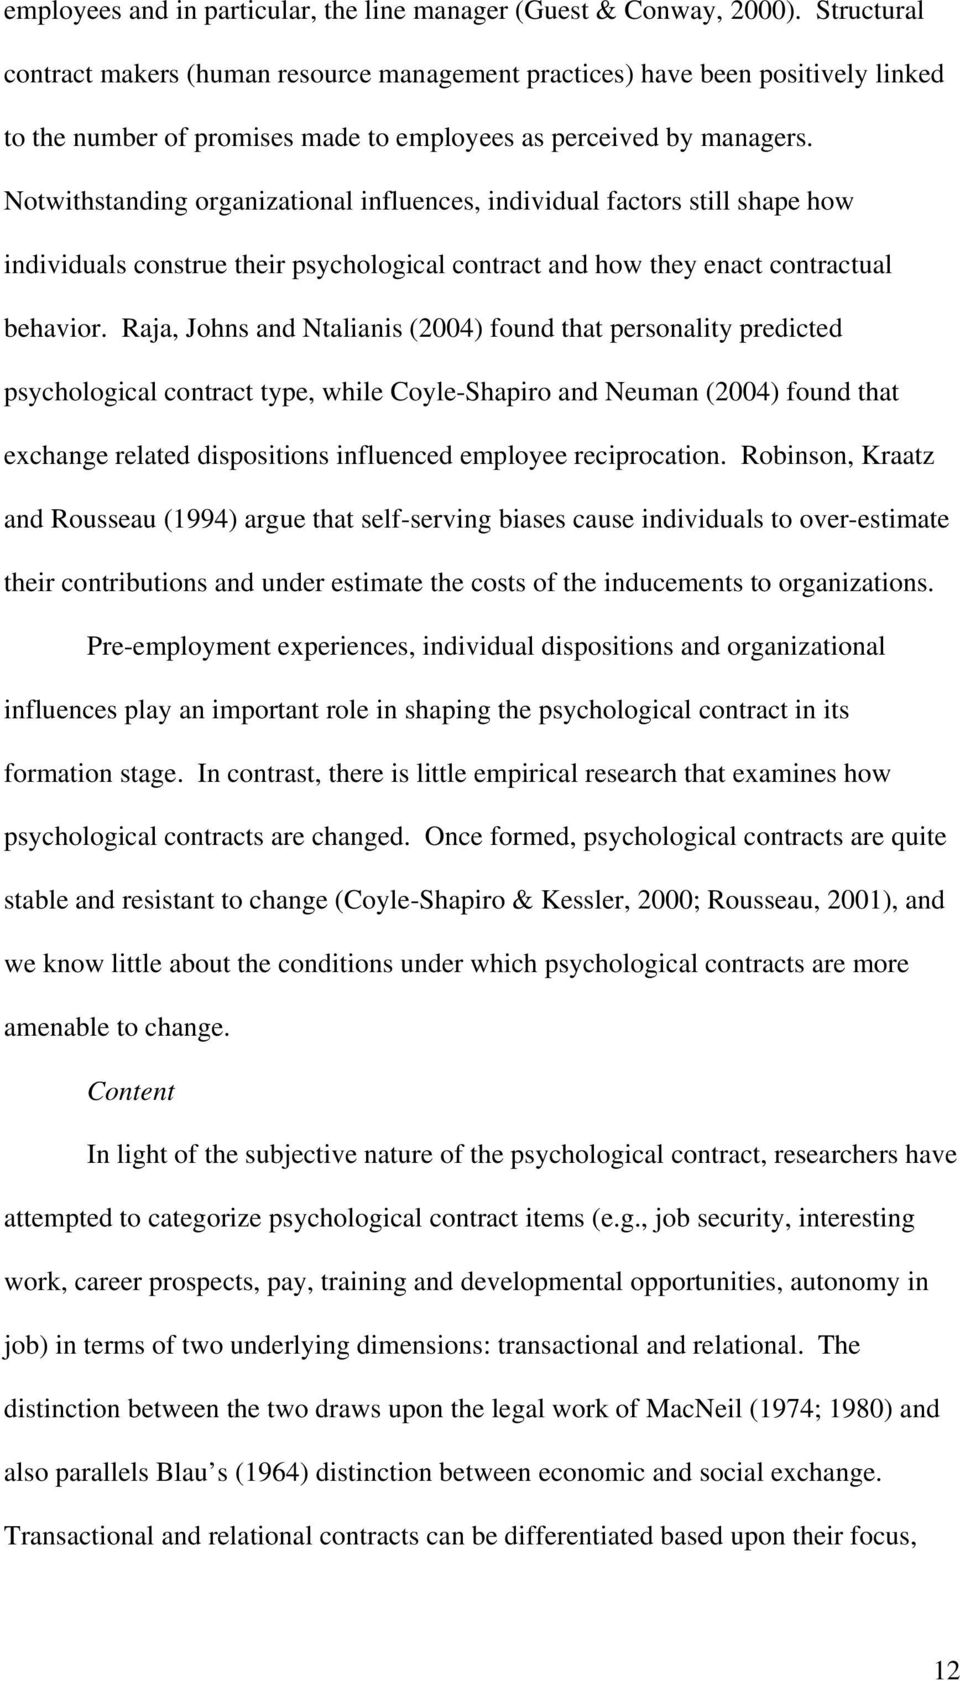 Notwithstanding organizational influences, individual factors still shape how individuals construe their psychological contract and how they enact contractual behavior.